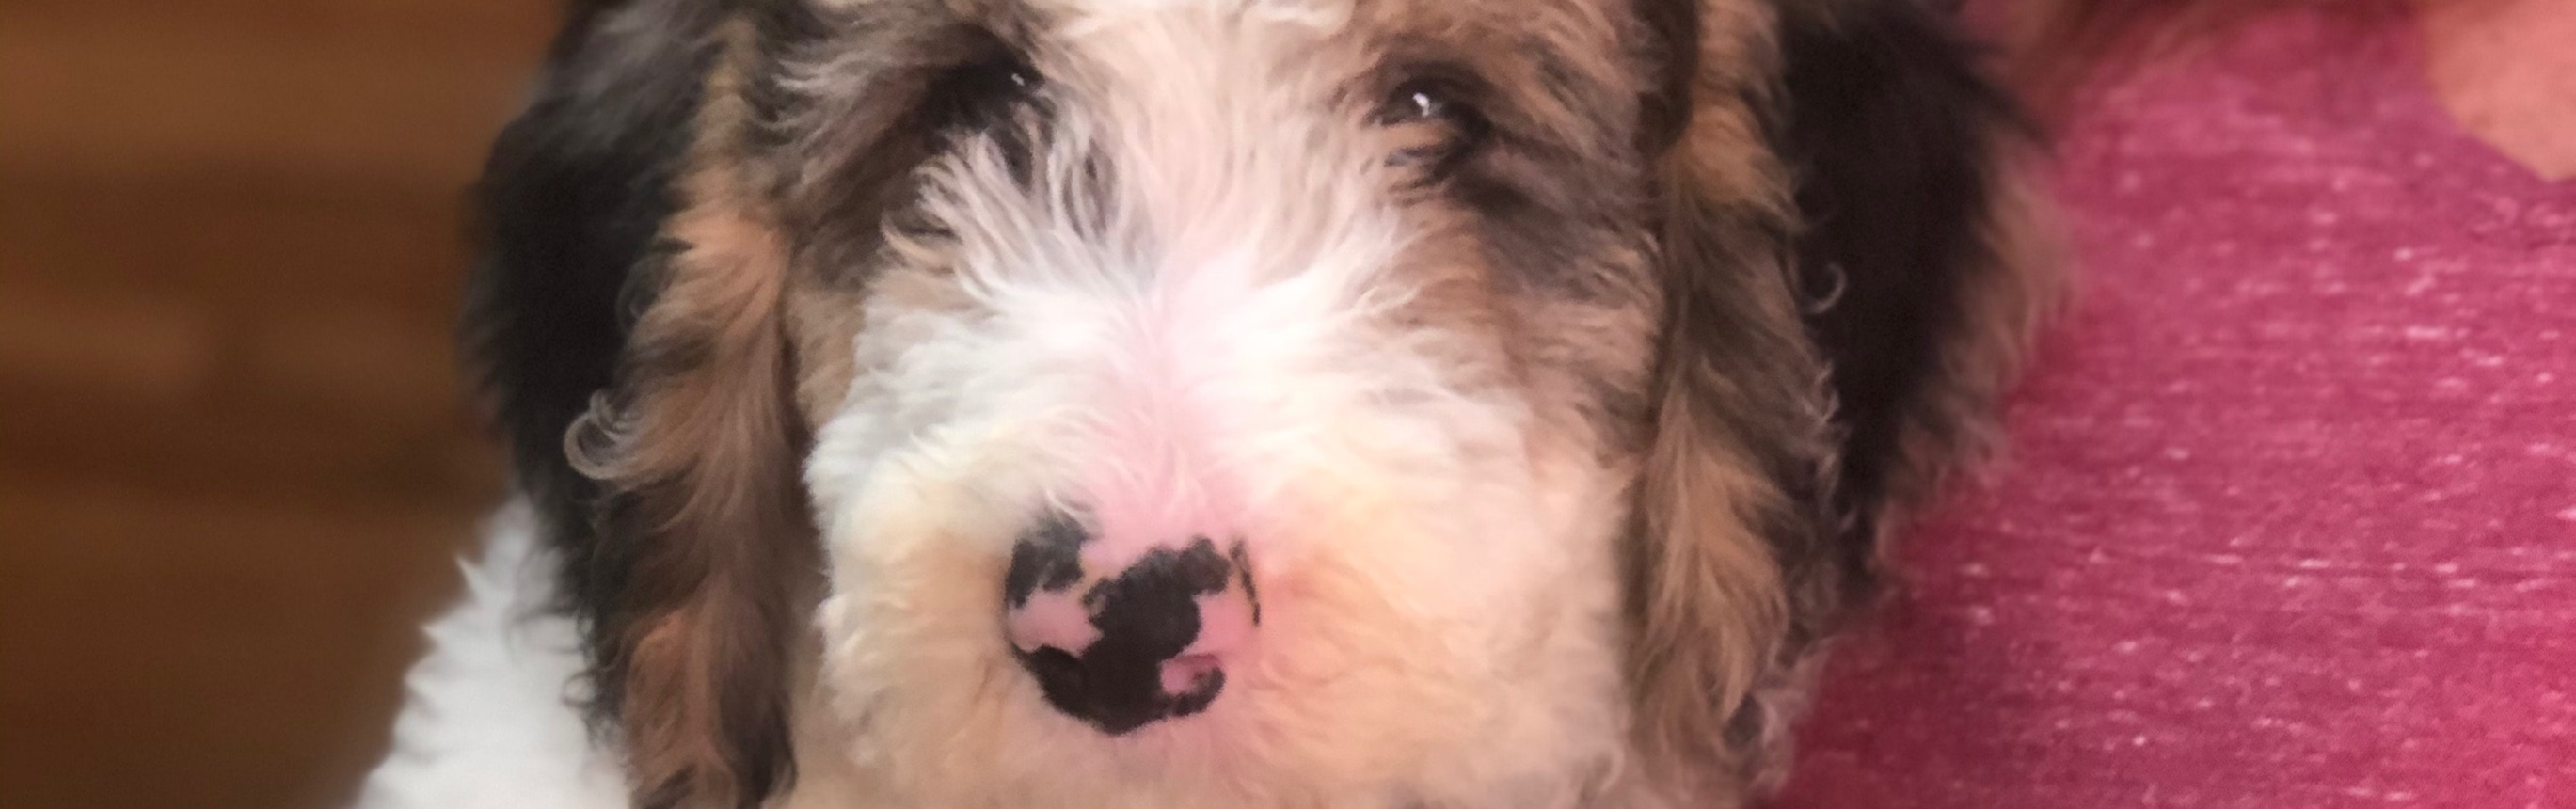 F1b Sheepadoodles By Natty 4 Started Puppies Ready Now Goldendoodle Breeder Ny Goldendoodle Puppies Ny Mini Sheepadoodle Puppies Doodles By River Valley Doodle Puppies